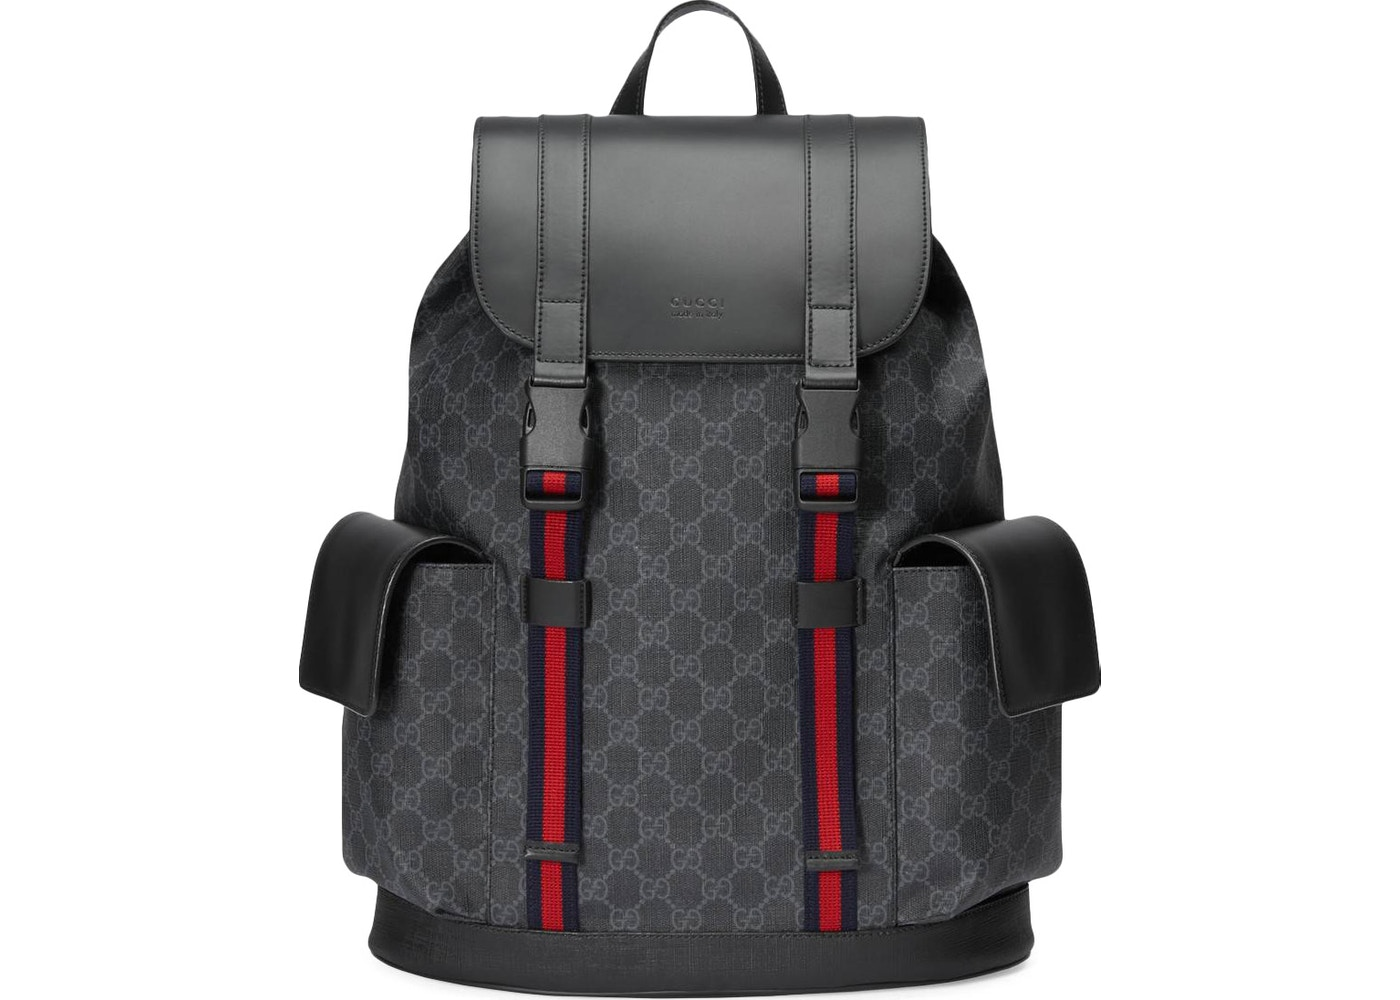 a20d2193629a Gucci Soft Backpack GG Supreme Blue/Red Web Black/Grey